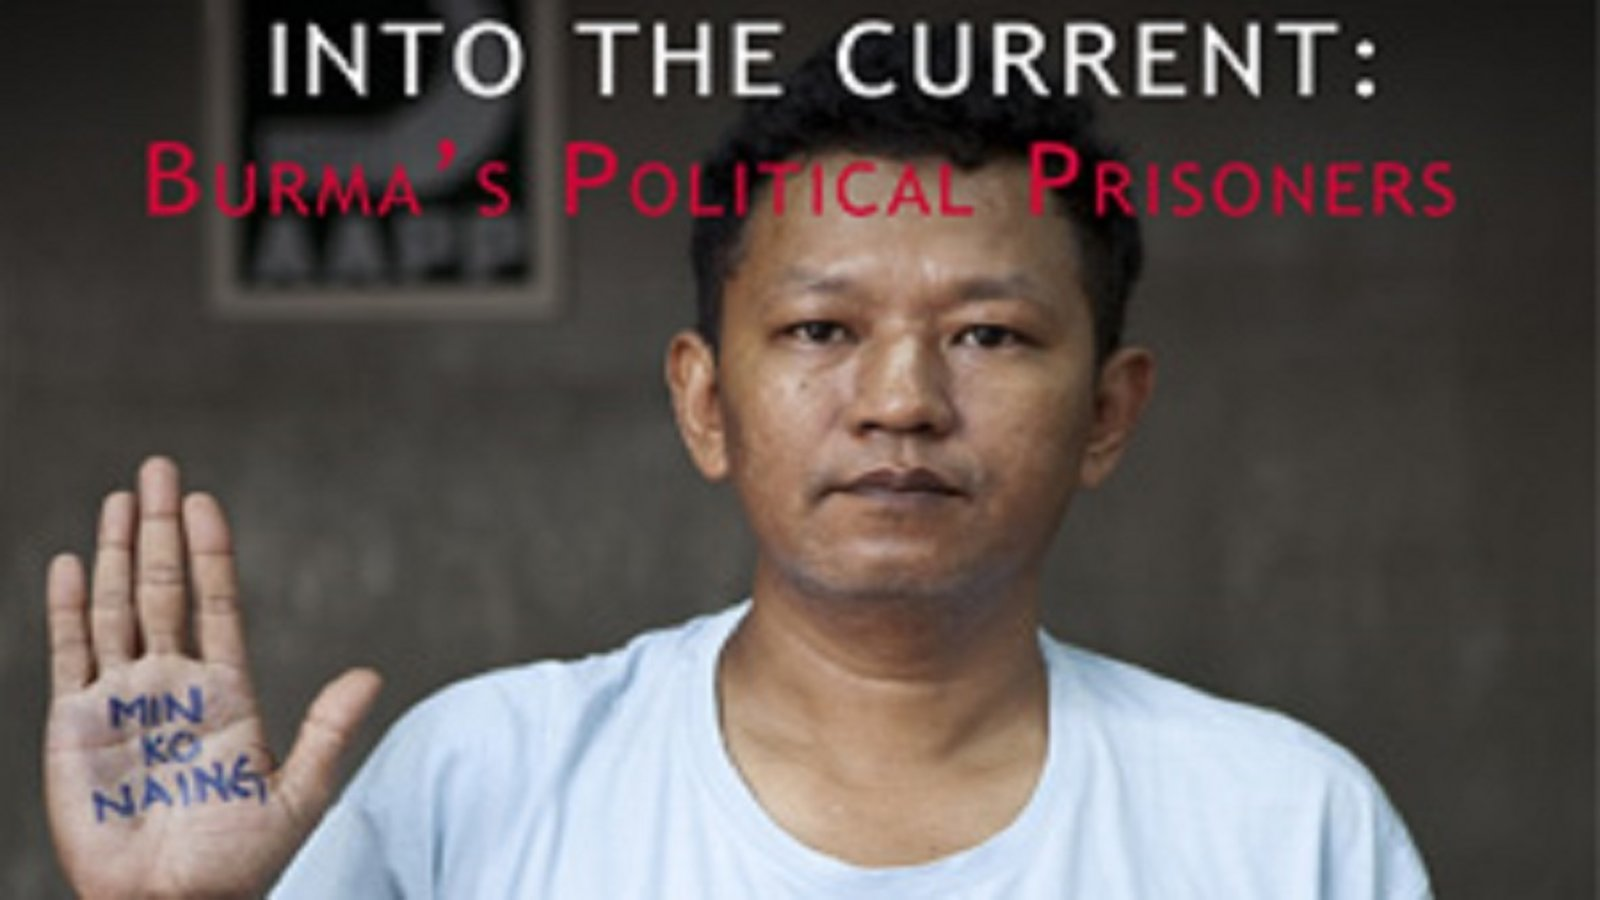 Into the Current - Burma's Political Prisoners